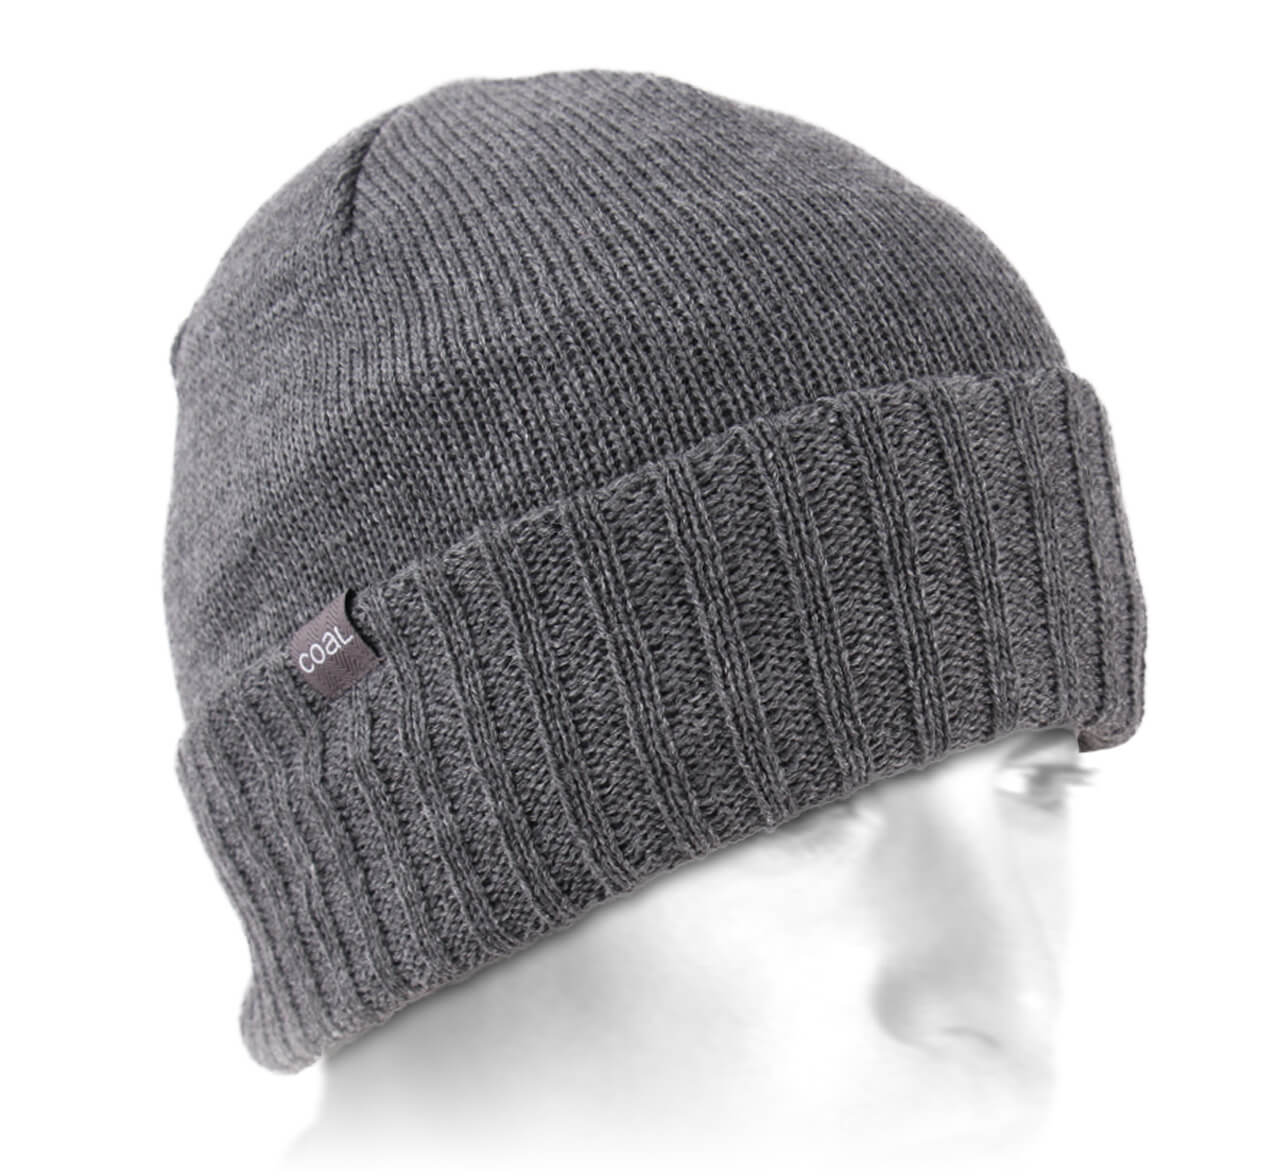 Bonnet Docker / Court Bonnet Homme The rogers